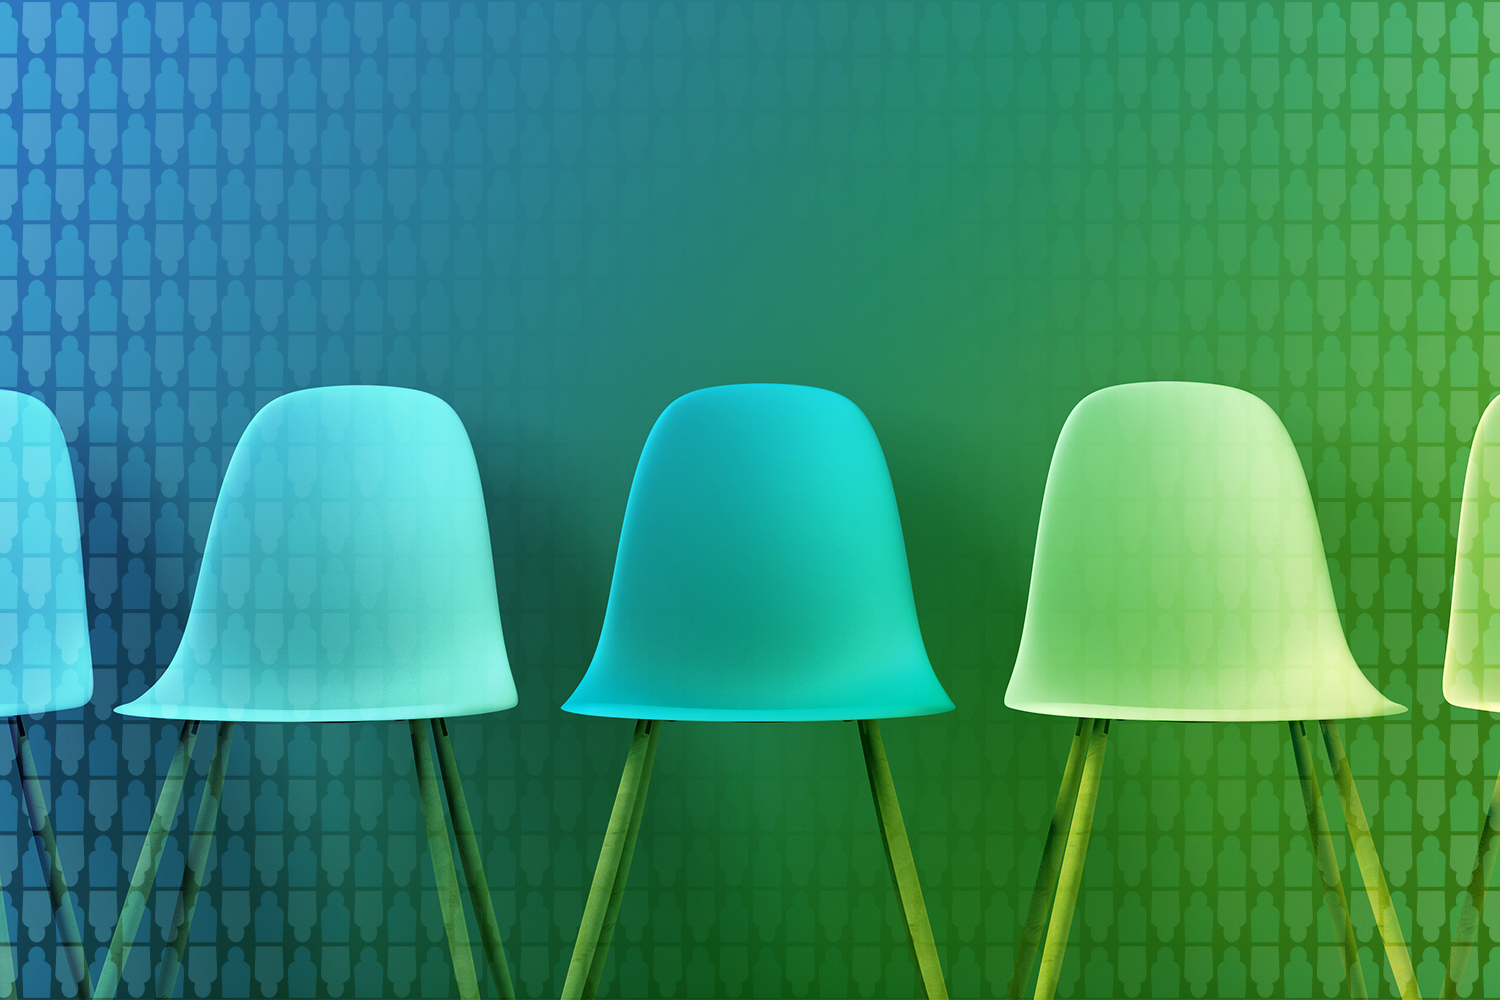 color-treated photo of line of chairs waiting for applicants